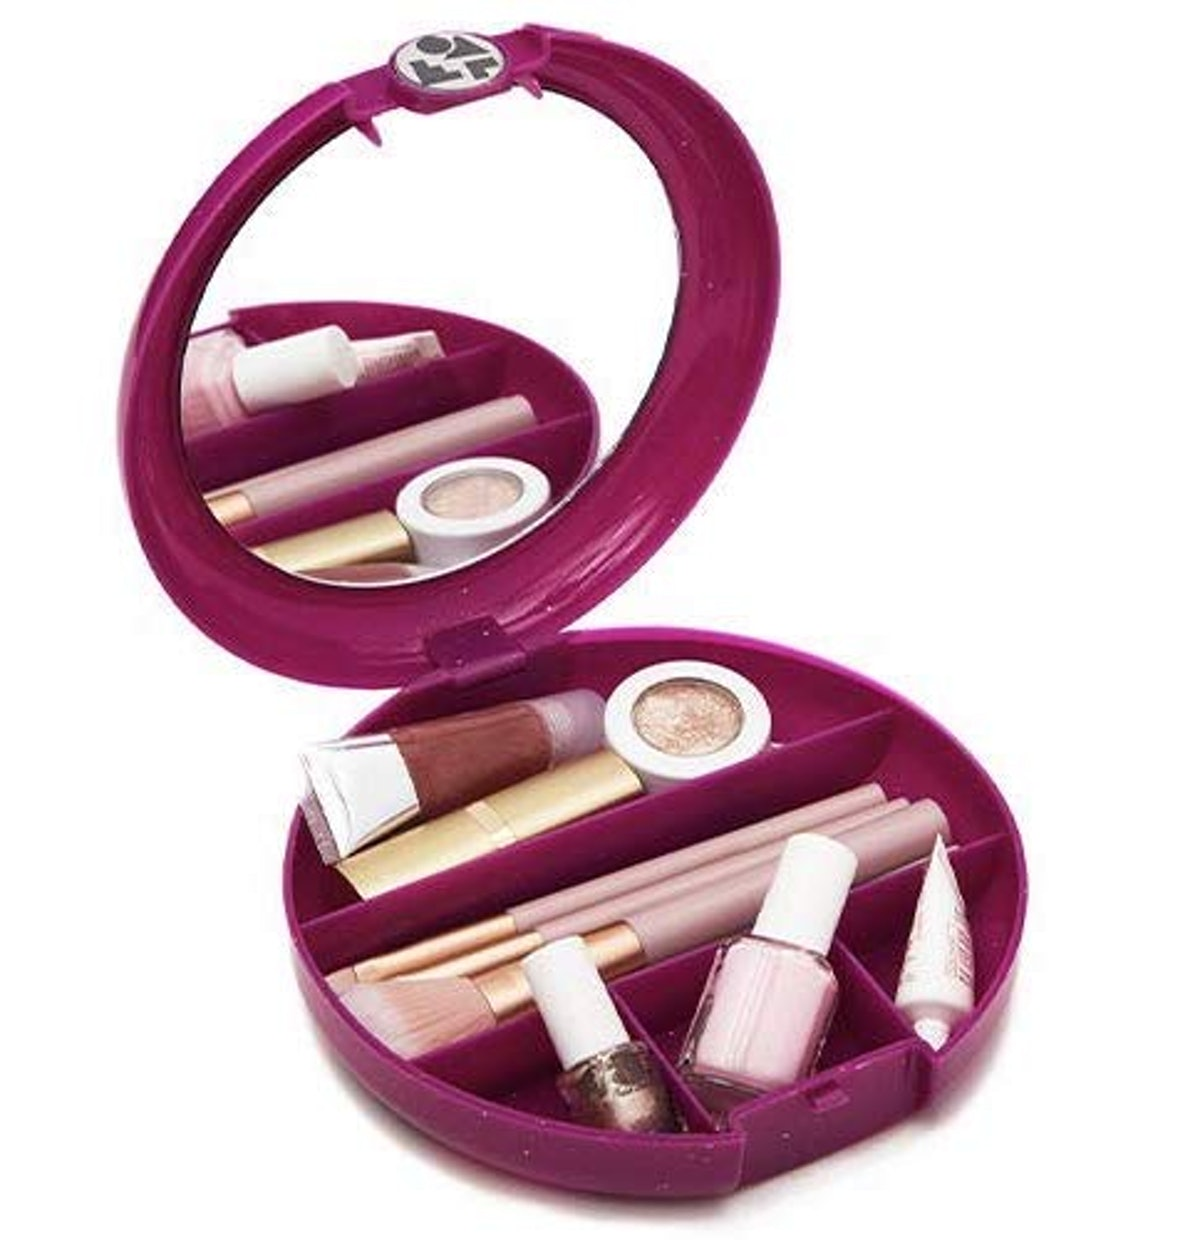 Caboodles Cosmic Cosmetic Retro Compact